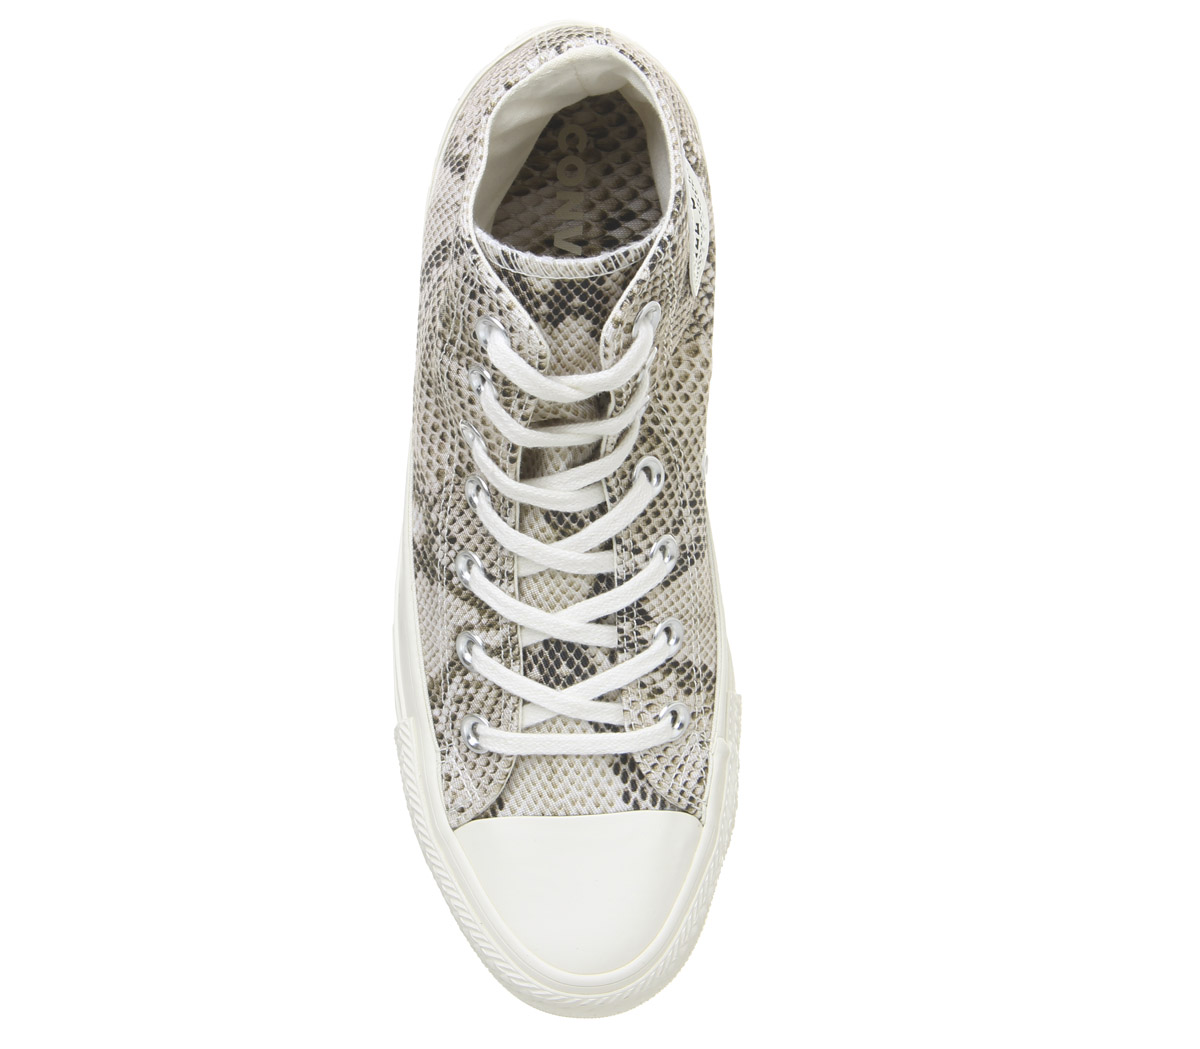 Womens-Converse-Converse-All-Star-Hi-Trainers-Egret-Black-Snake-Trainers-Shoes thumbnail 5